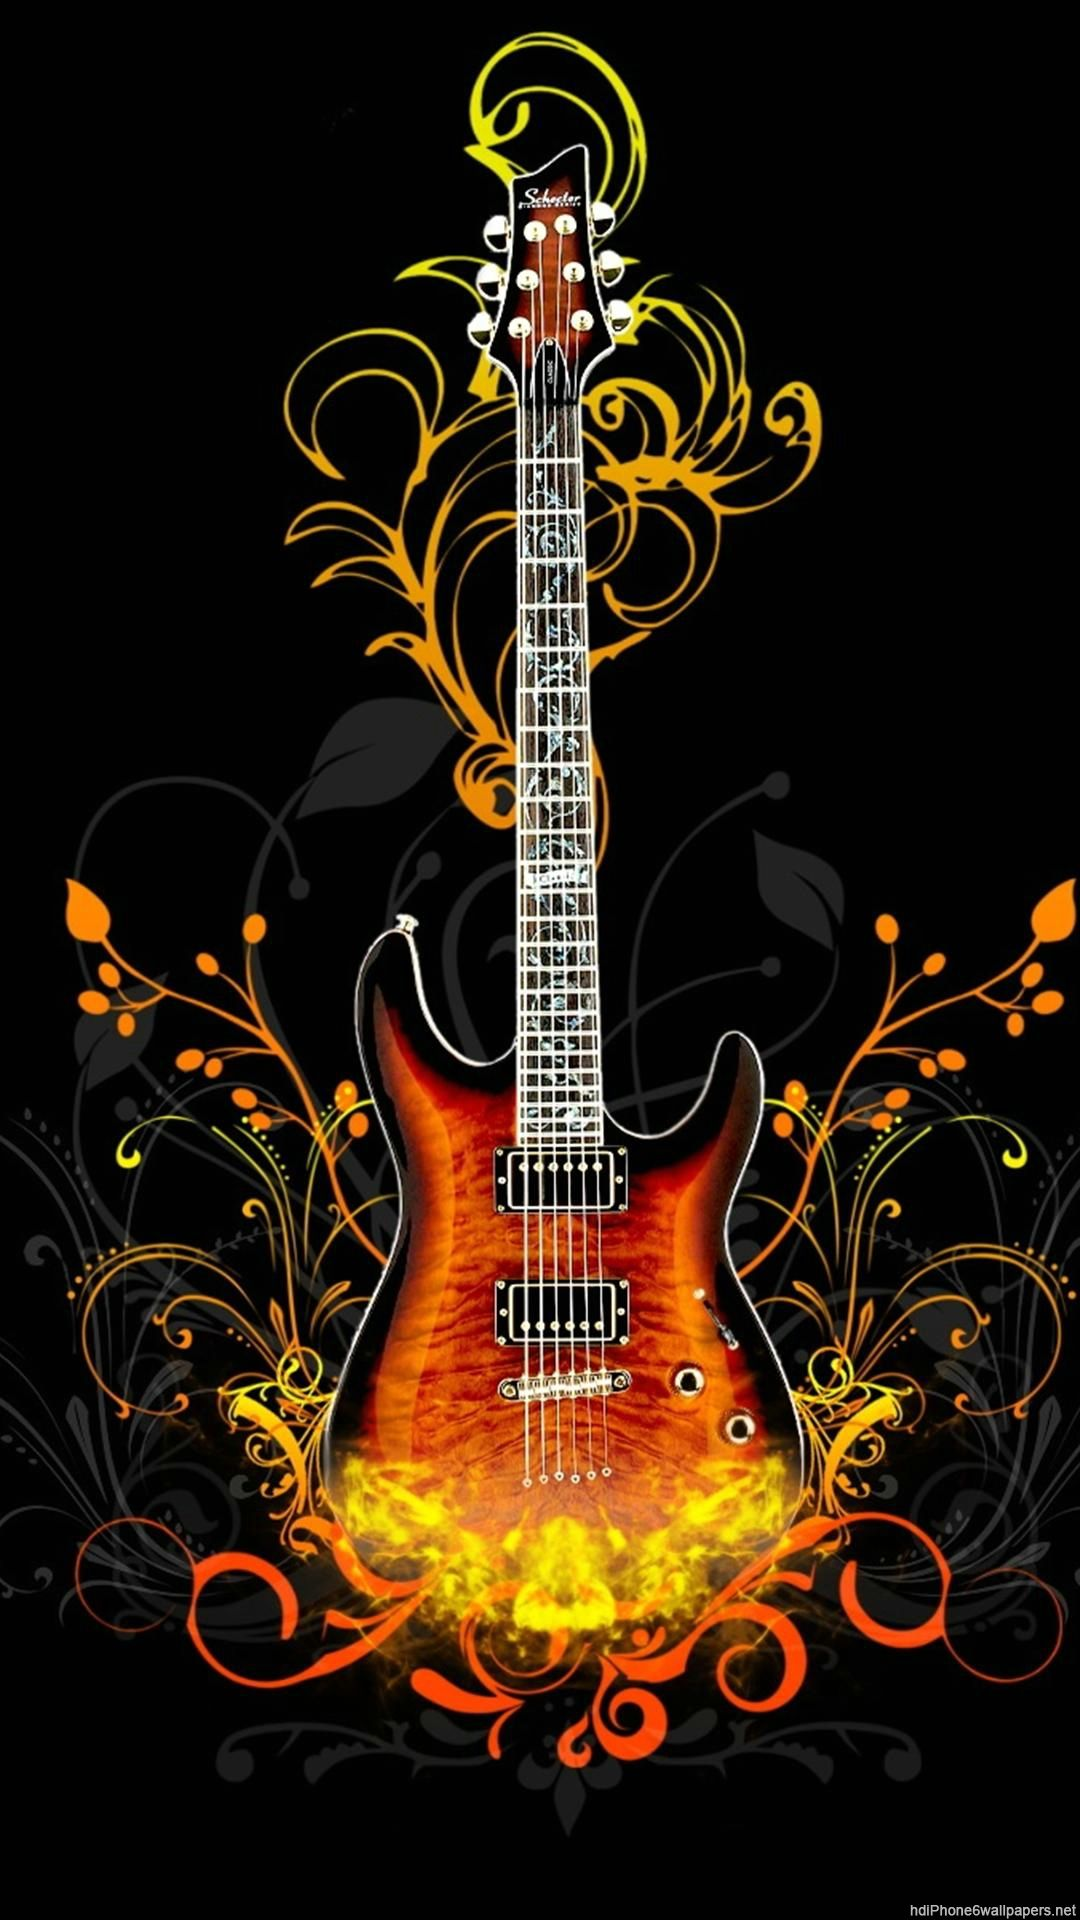 guitar wallpaper iphone is high definition phone wallpaper you can make this wallpaper for your iphone x backgrounds tablet android or ipad